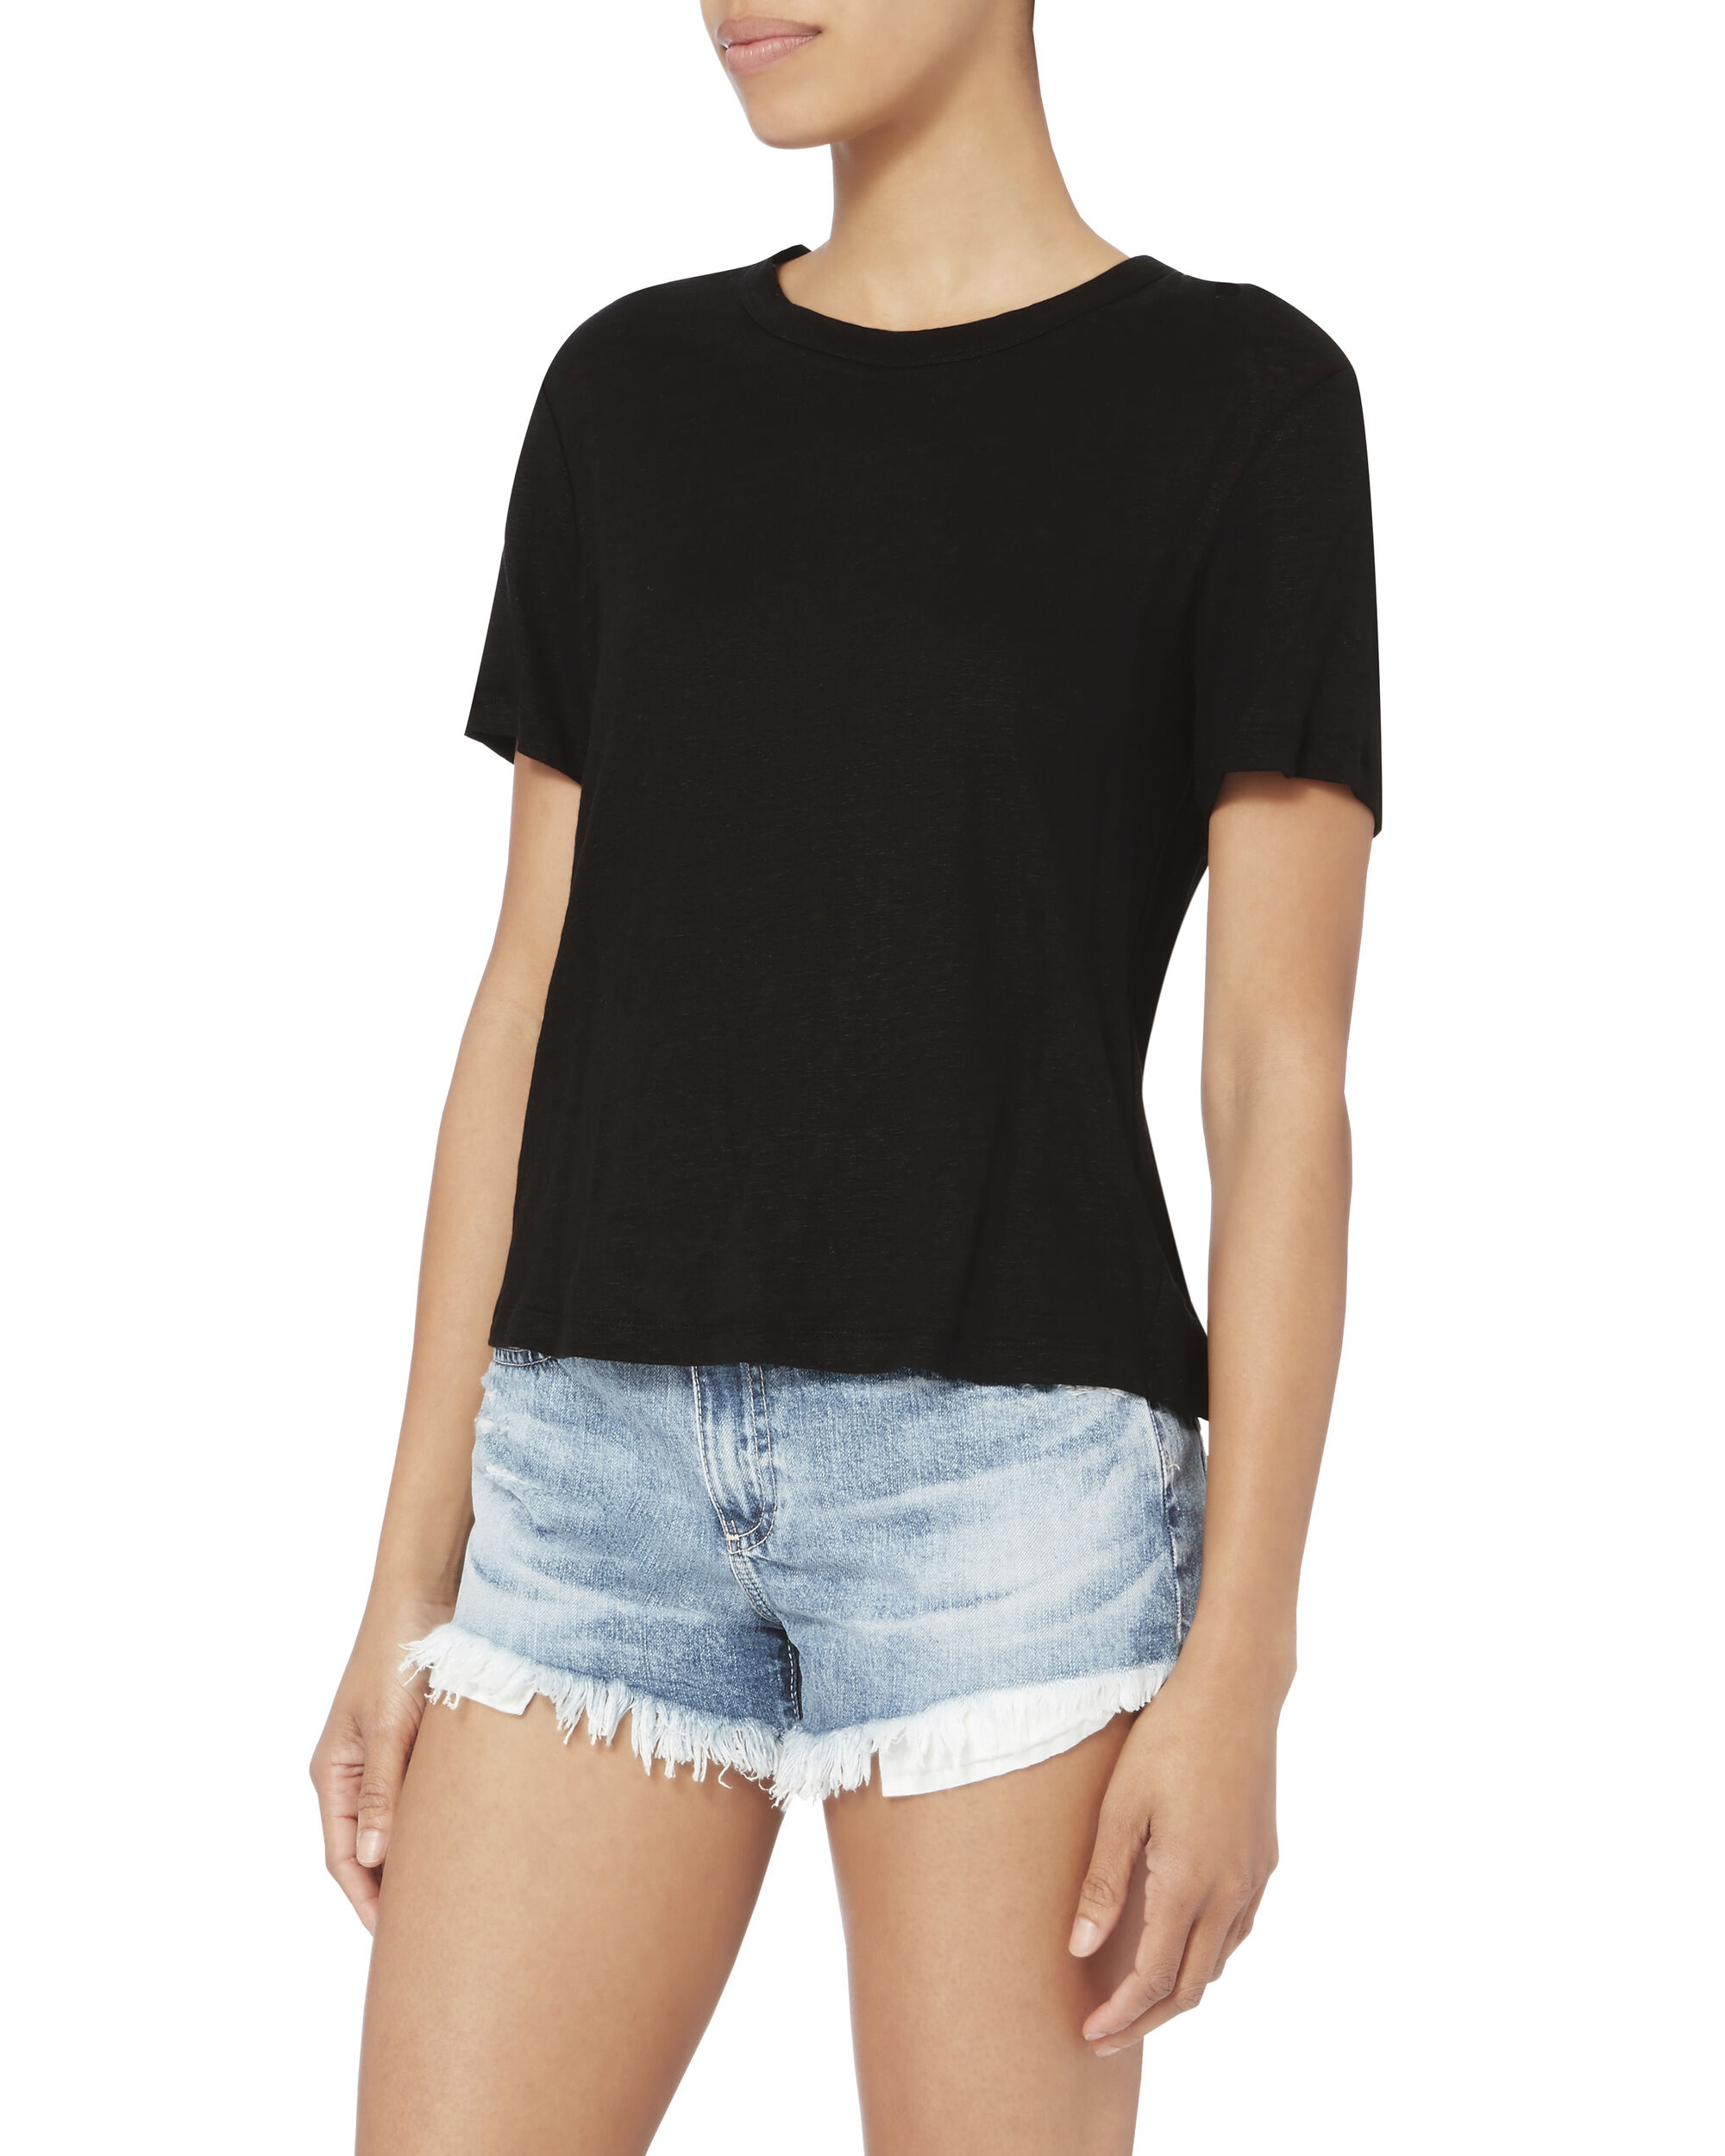 Alber Lace-Up Linen Tee, BLACK, hi-res